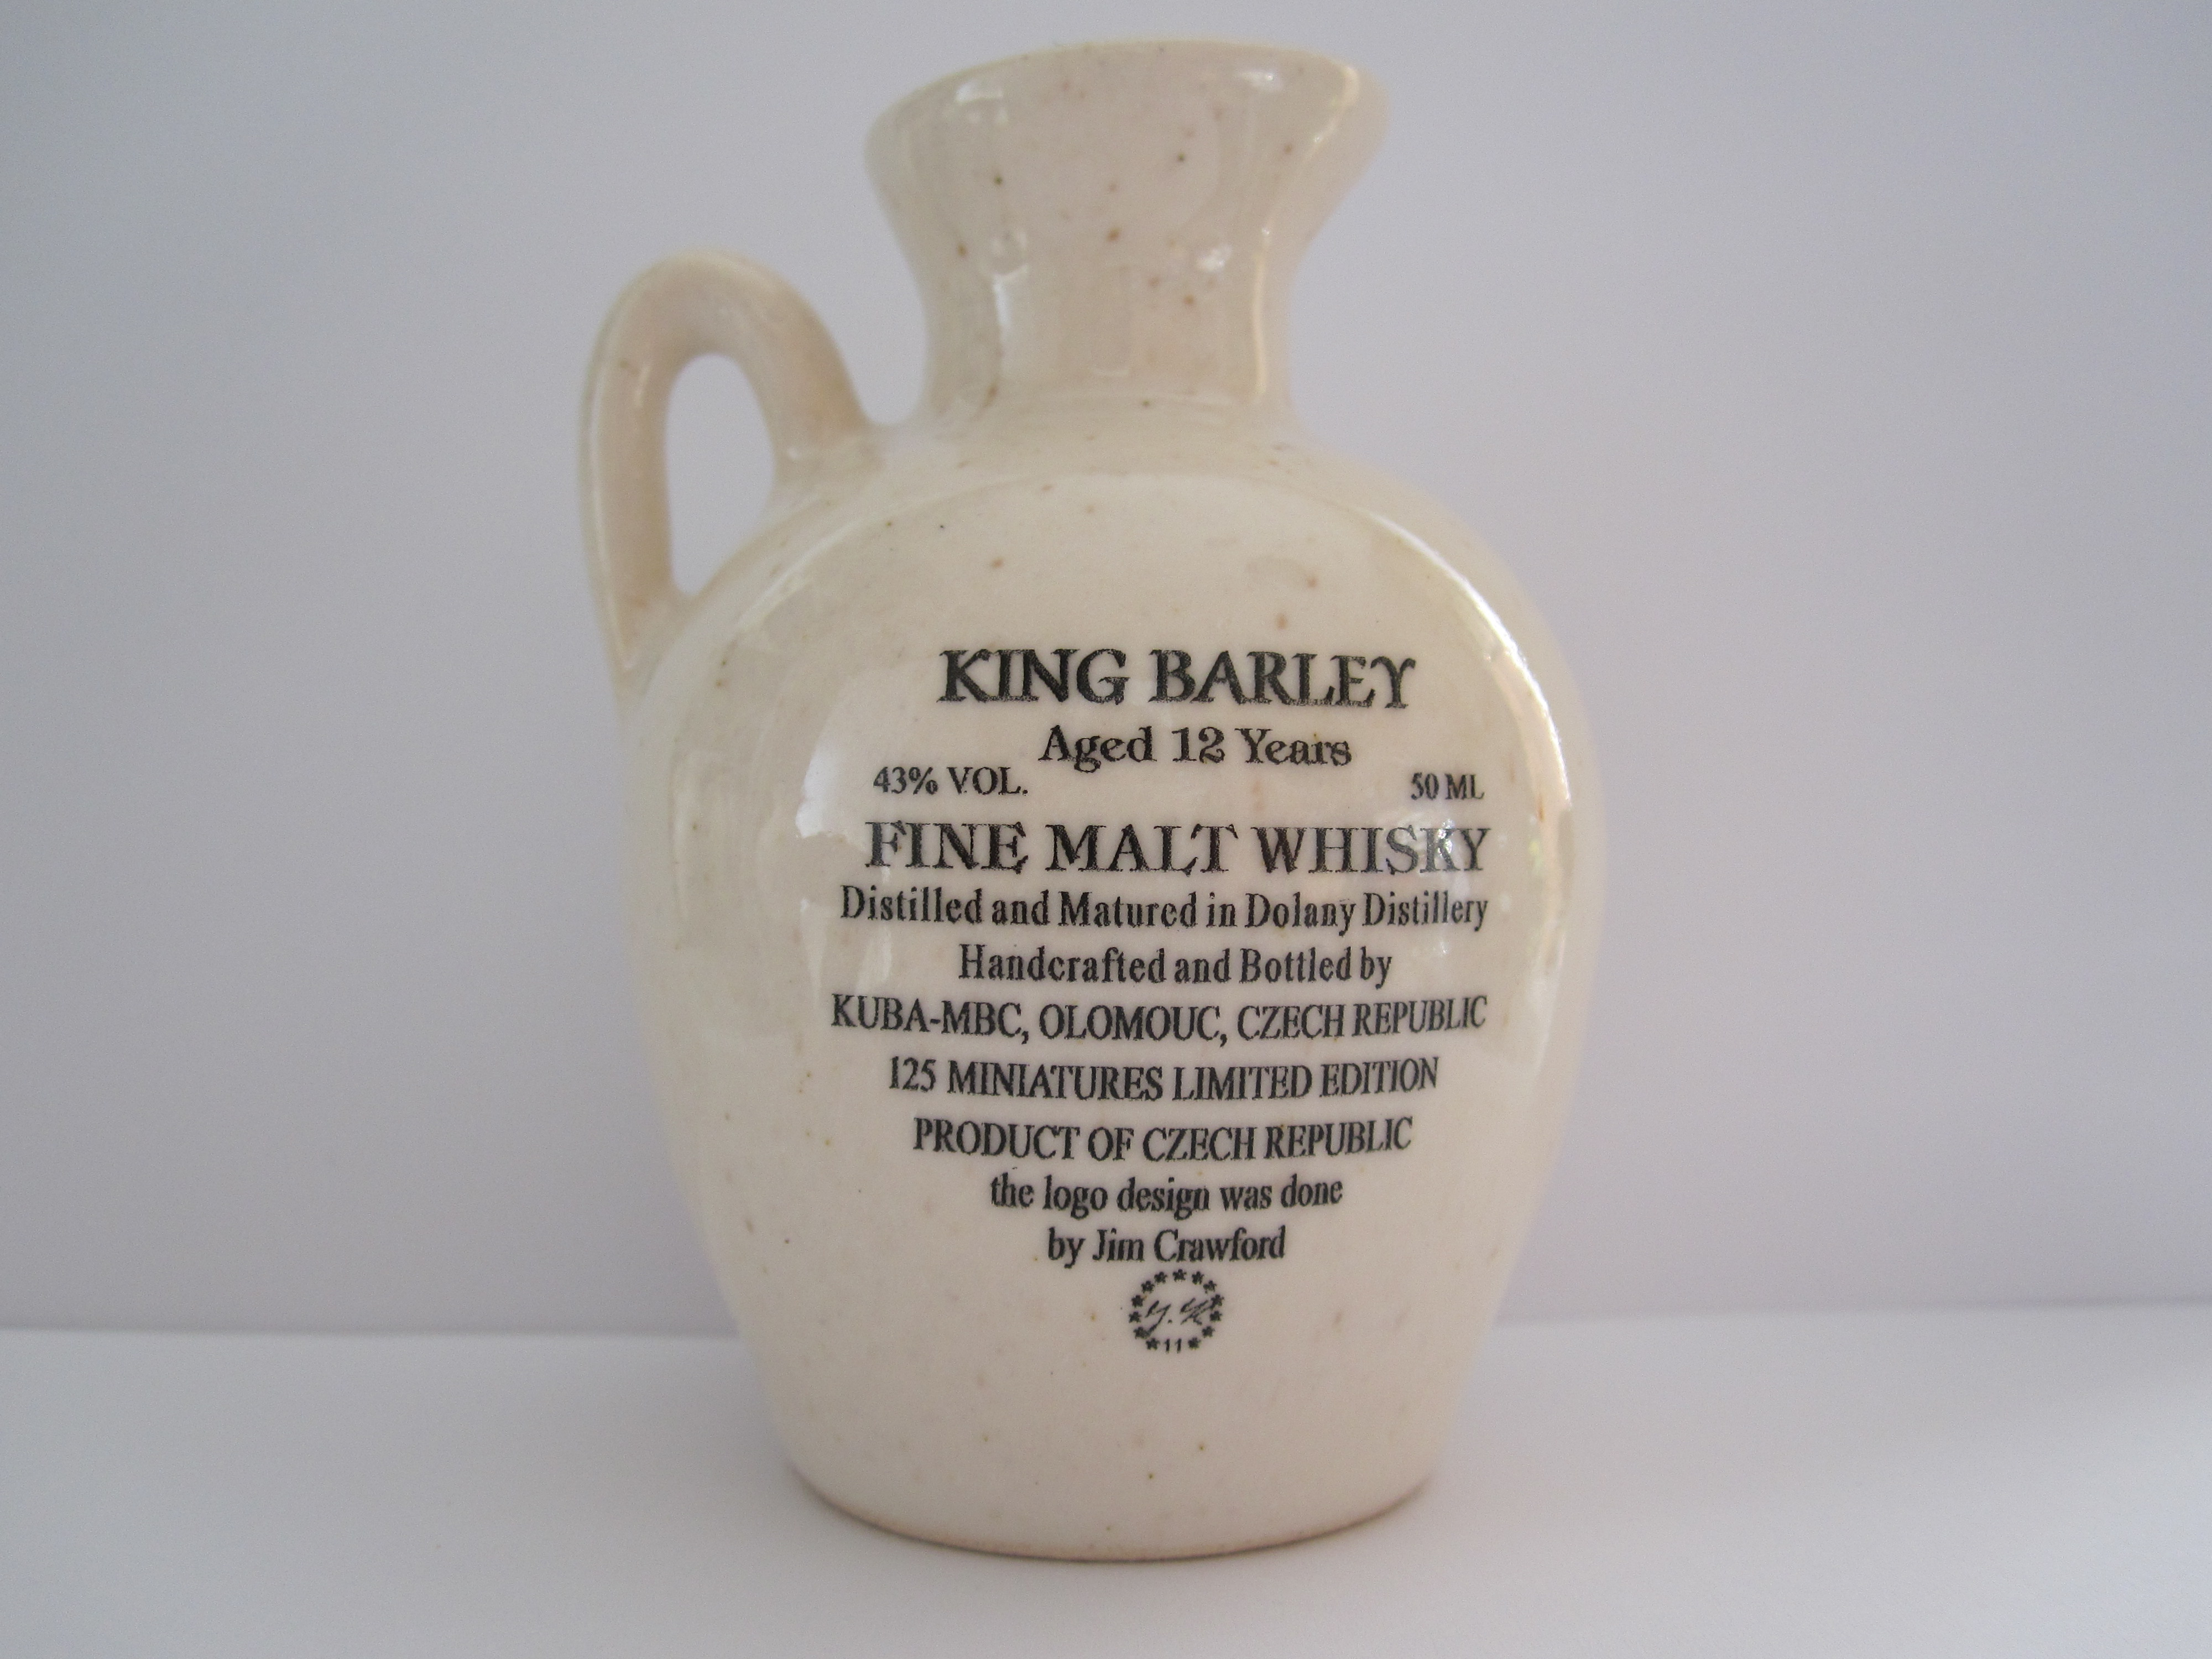 32th Anniversary Midwest Miniature Bottle Club Jug – Back side